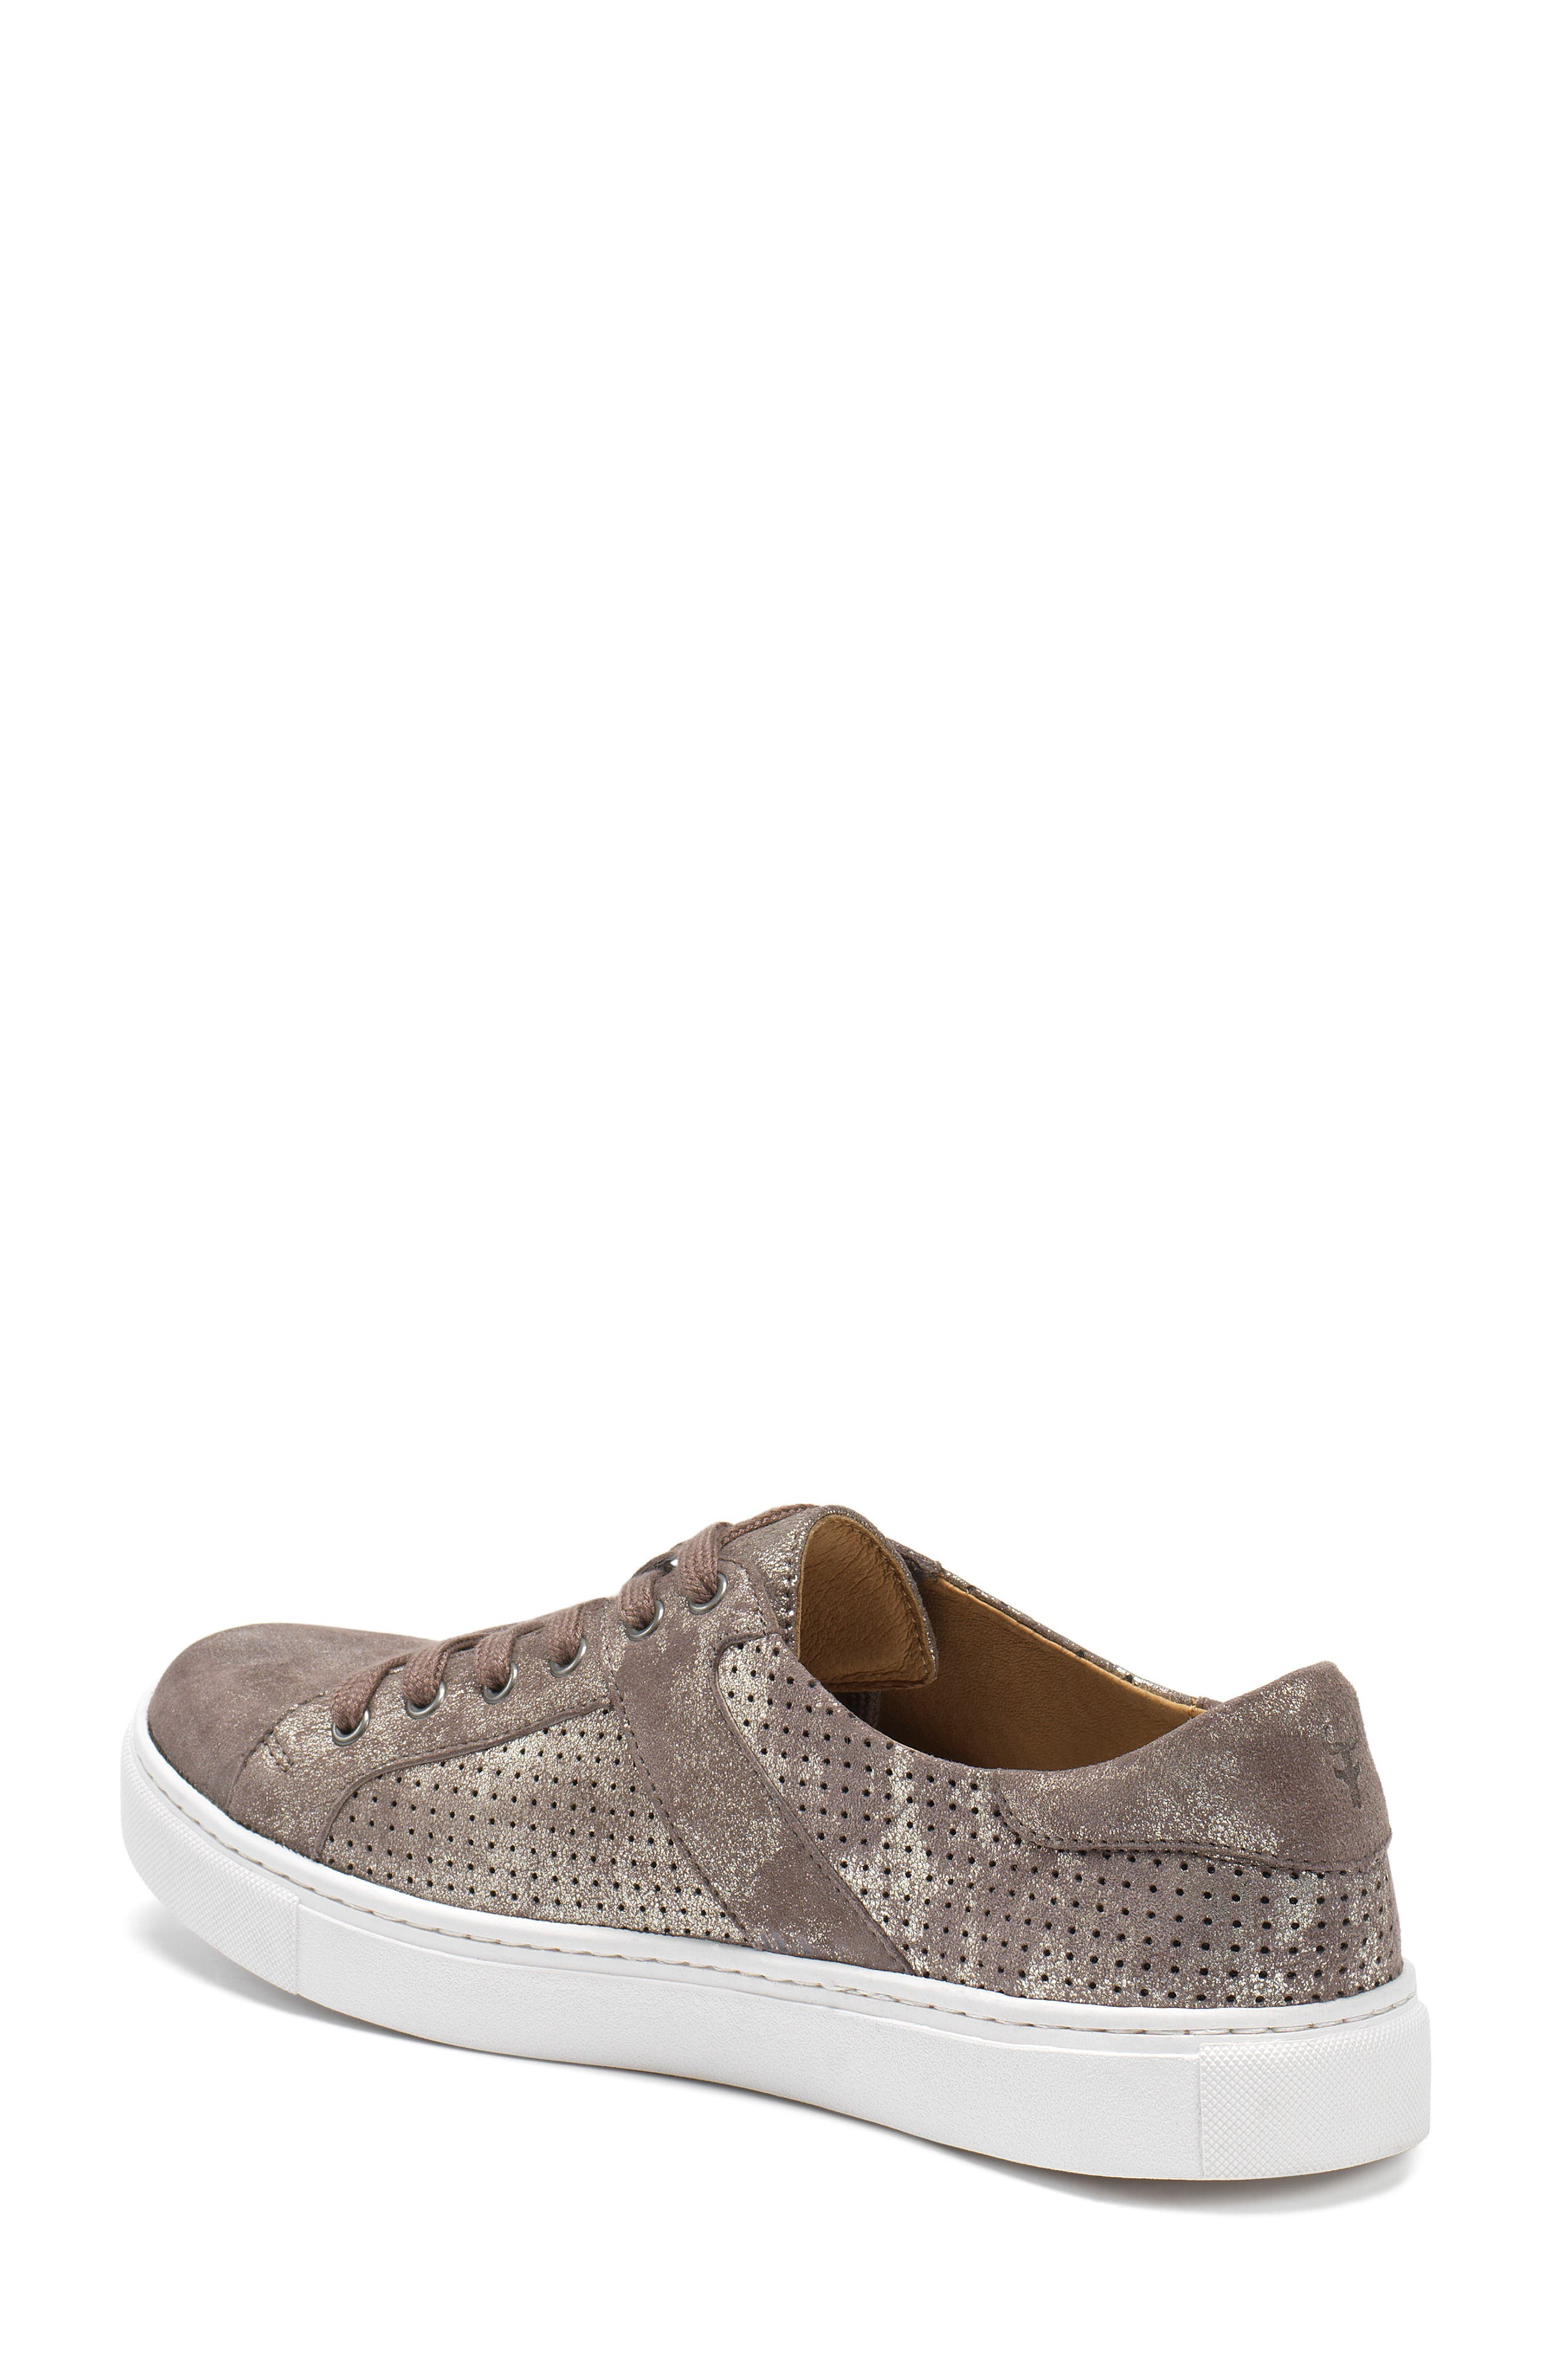 Lindsey Sneaker,                             Alternate thumbnail 2, color,                             Pewter Suede